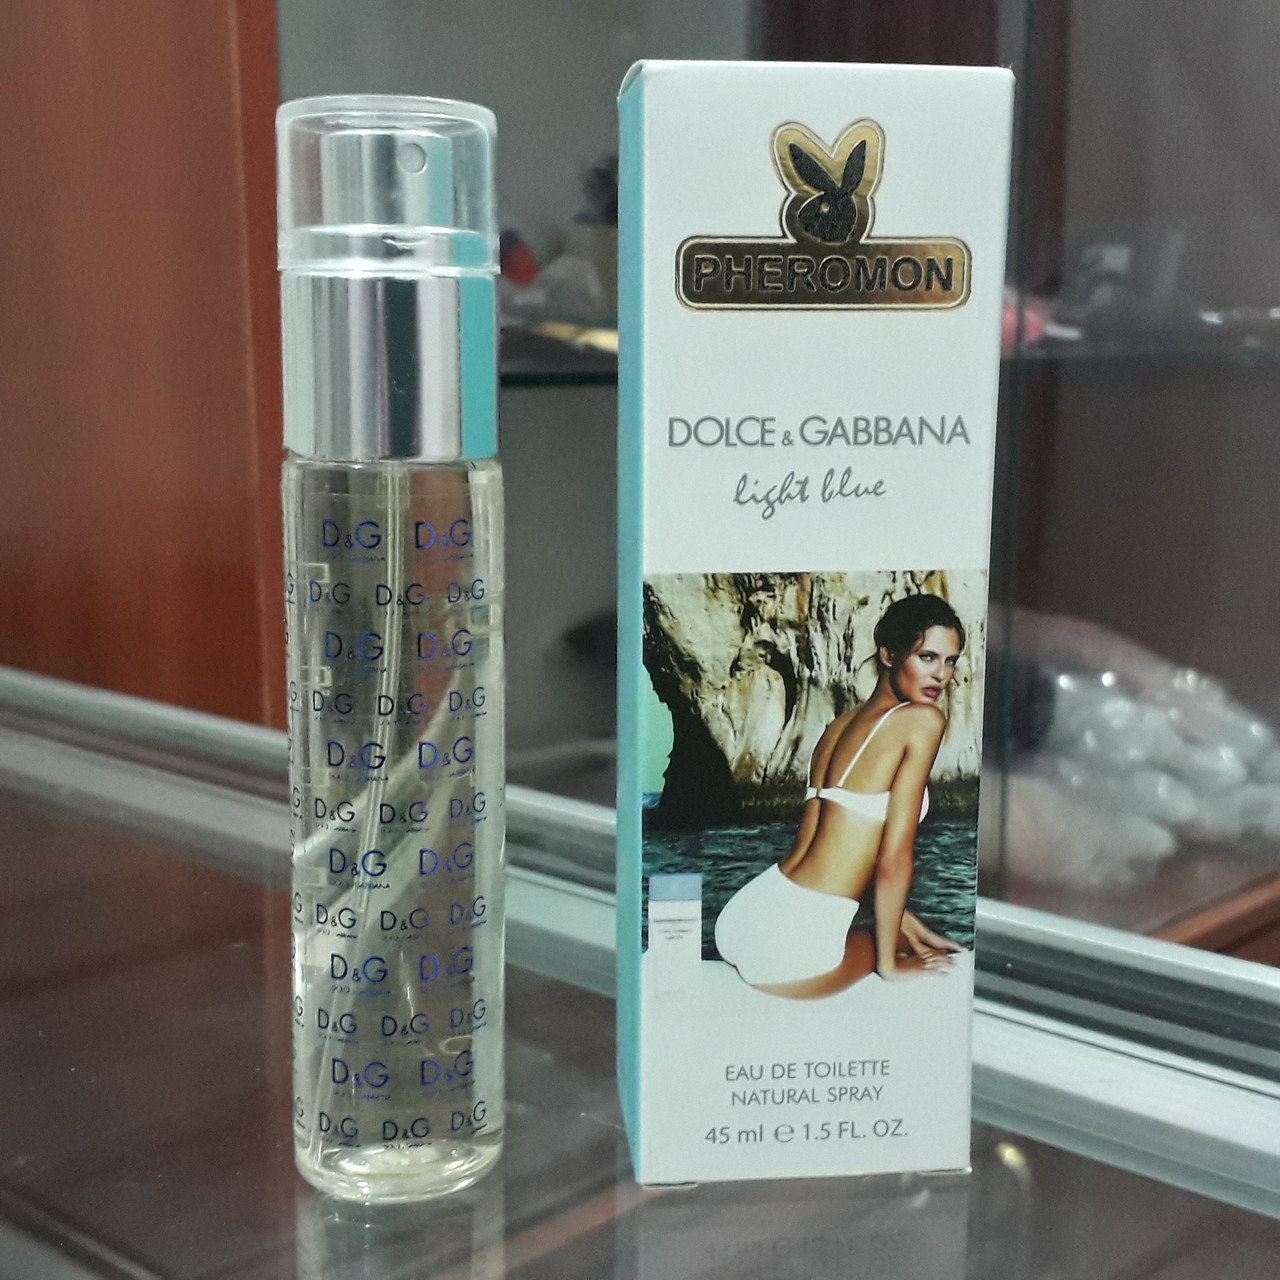 Духи с феромонами Dolce&Gabbana Light Blue, 45ml